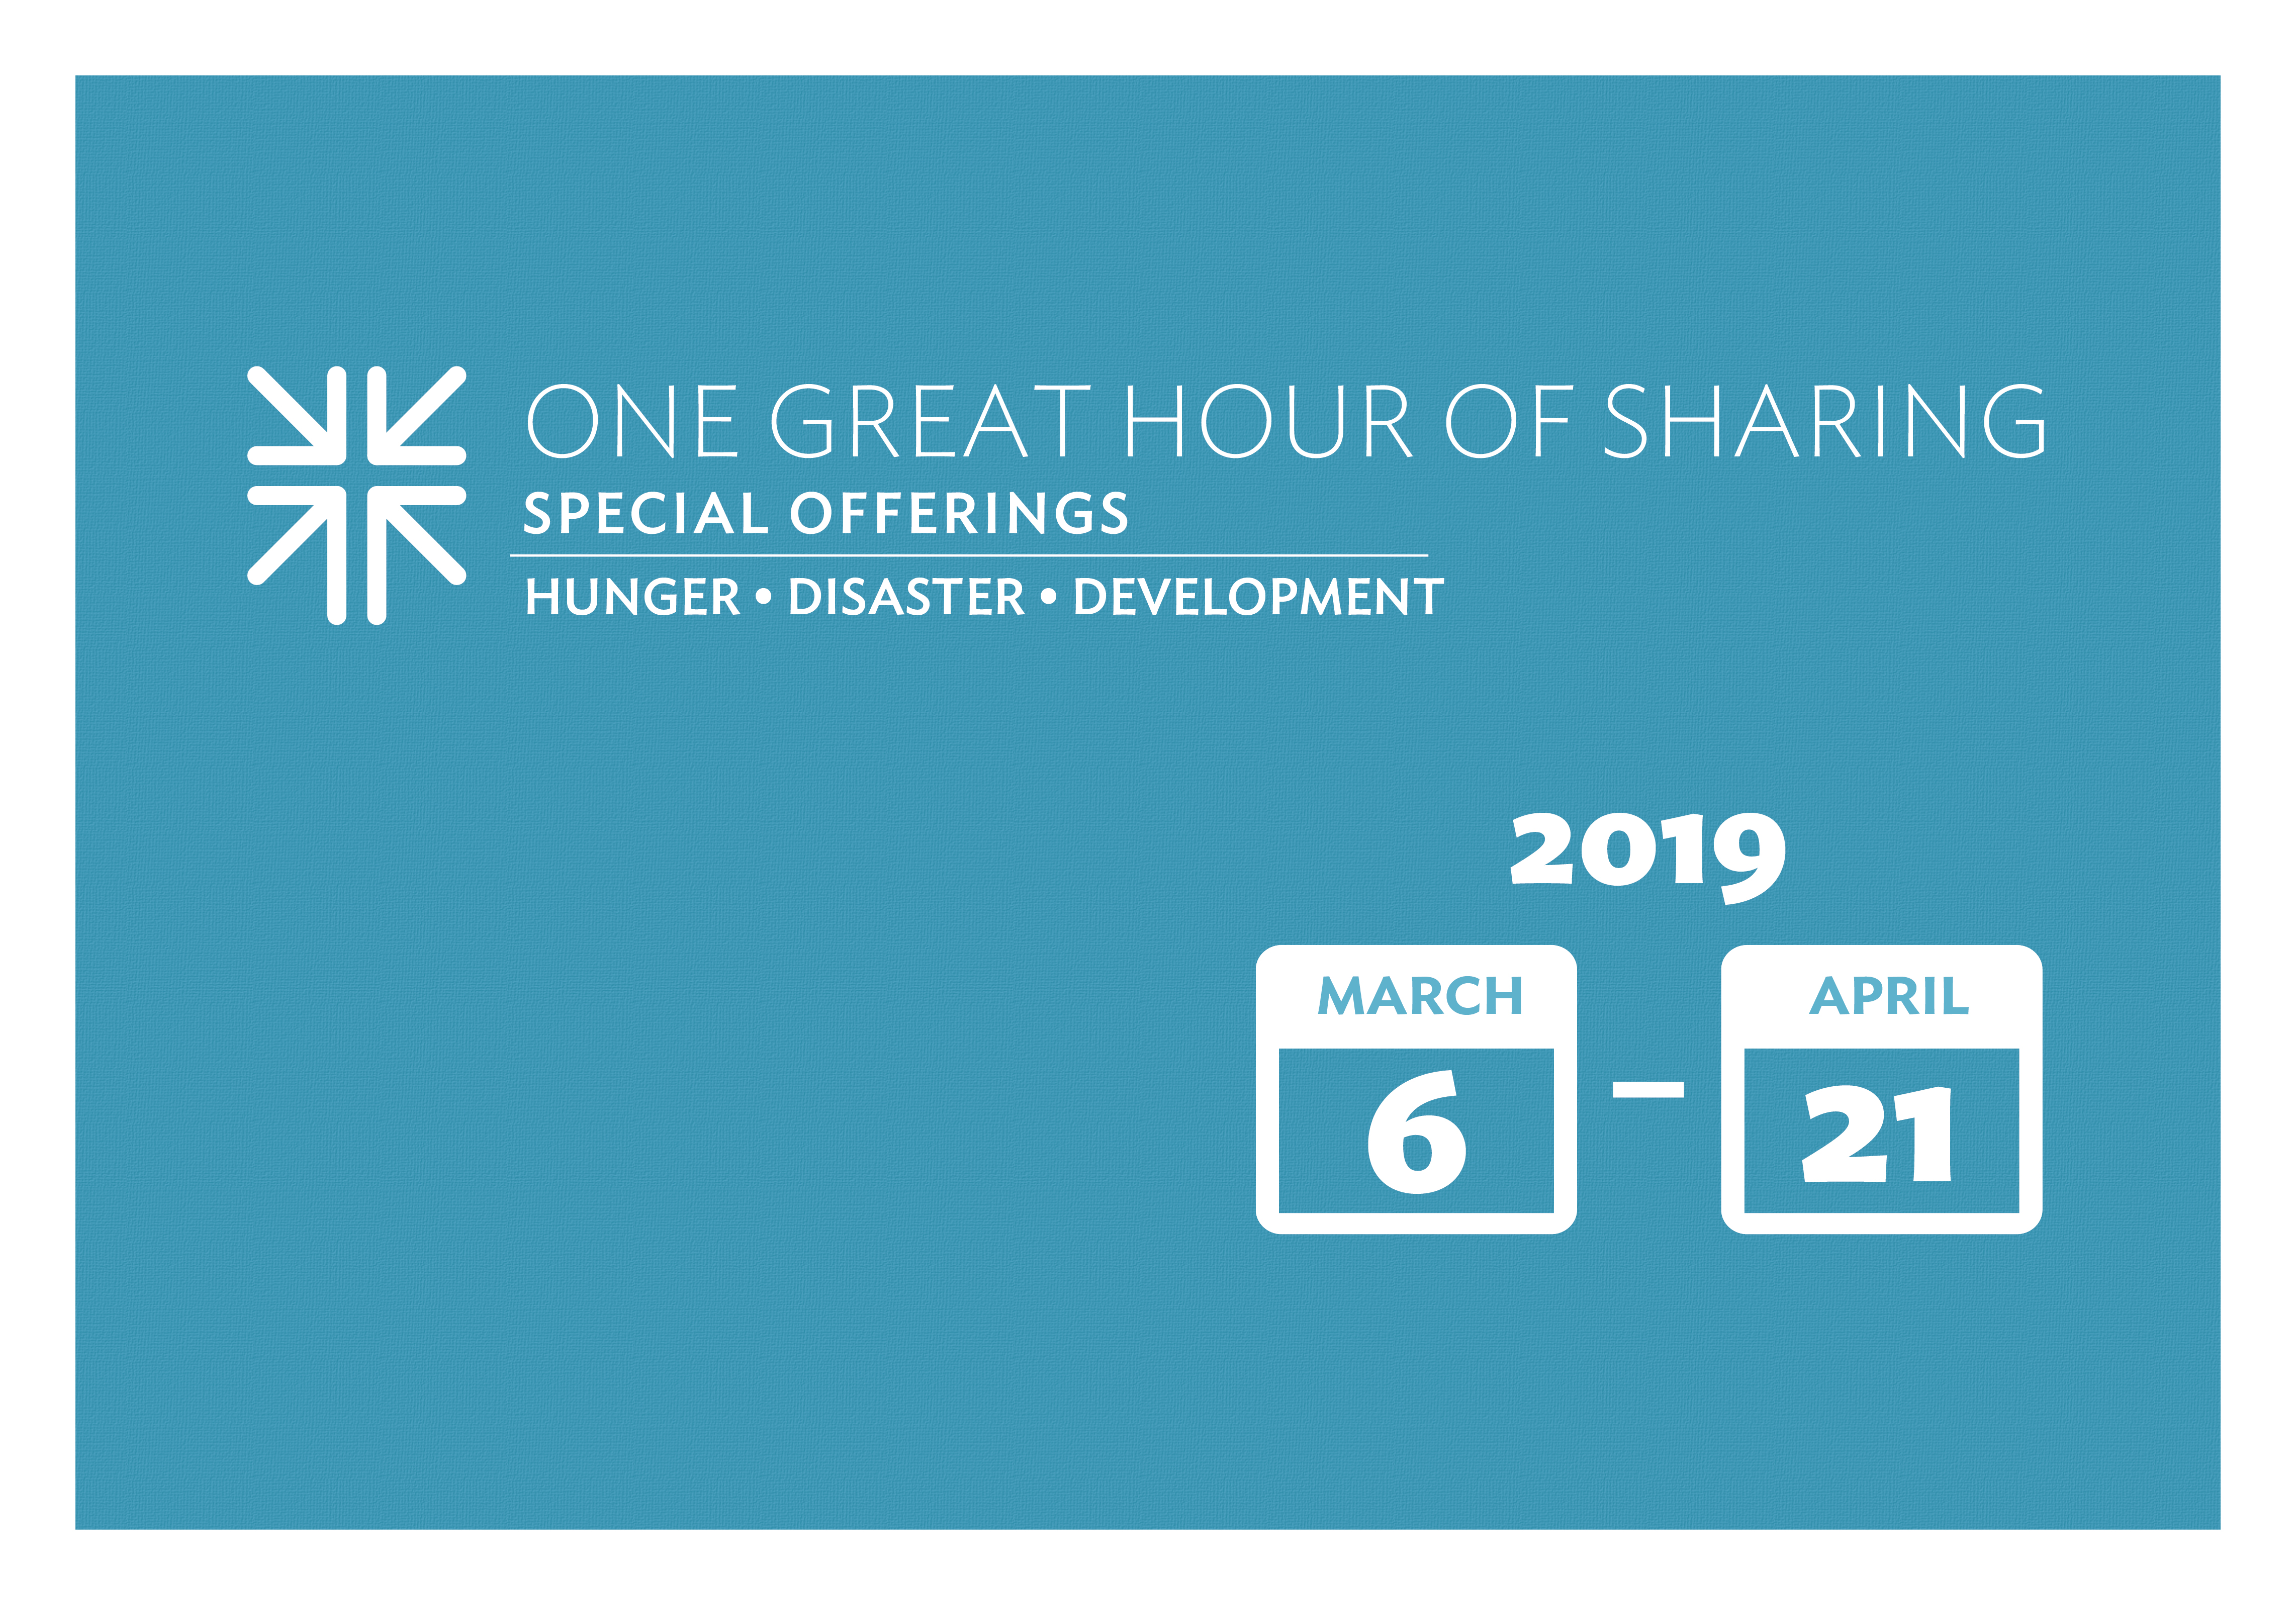 One Great Hour of Sharing 2019